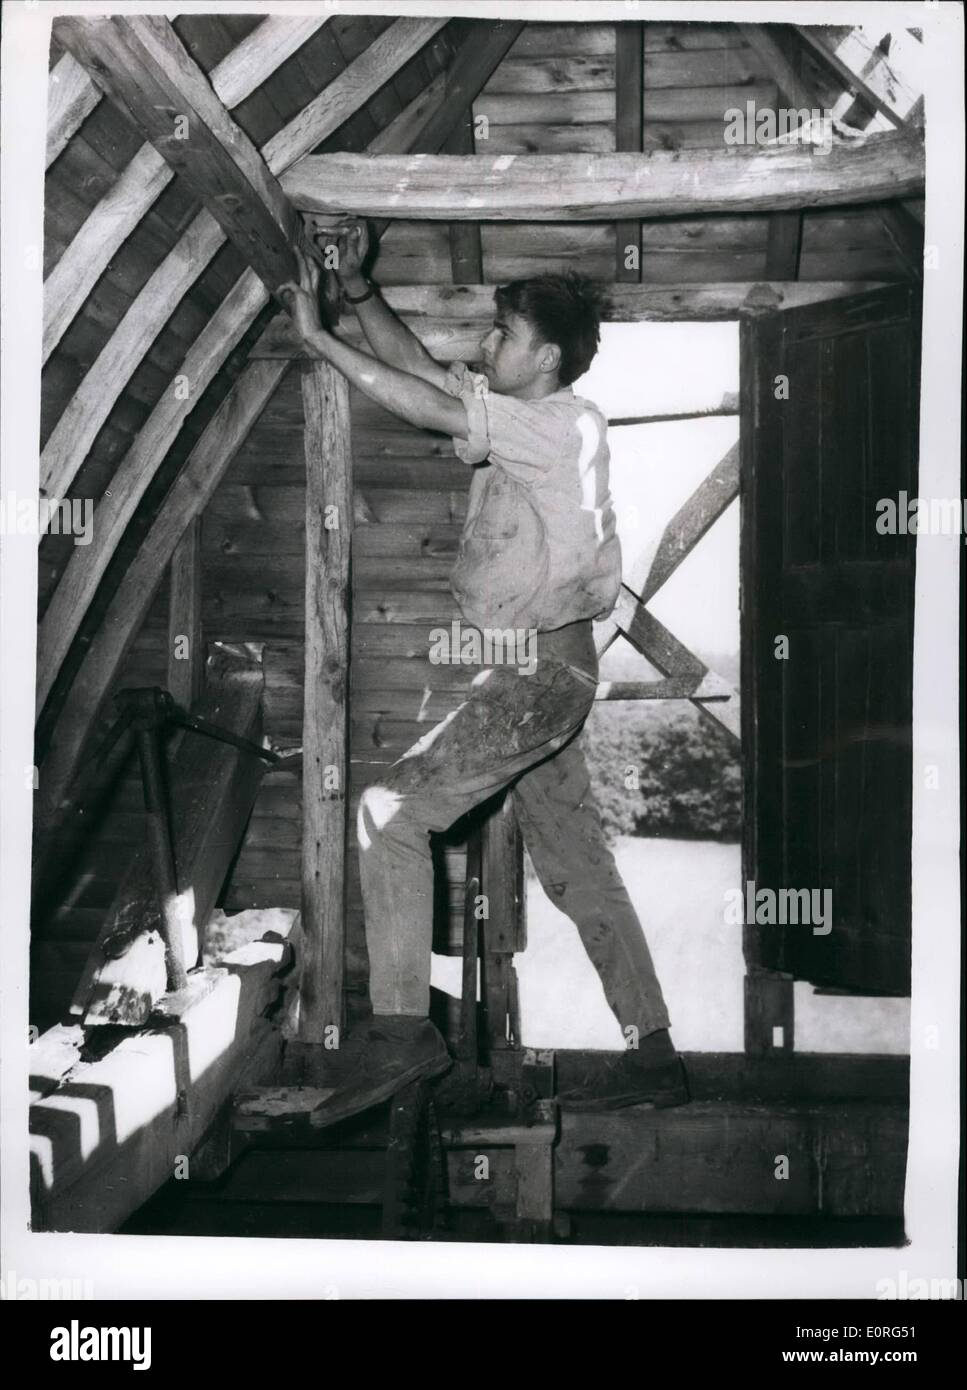 Aug. 08, 1959 - Ancient Sussex Windmill is being dismantled to be re-erectd in Surrey: The famous old Jolesfield Windmill, built about 1790 at Littleworth, near Partridge Green, Sussex, is now being dismantled, despite protests from residents. The 170 year old mill a smock mill (one in which the cap and sails only revolve) is to be re-erected and restored to full working order in the grounds of the 13th century Gatwick Manor, on the London to Brighton road. Mr. Edwin Hole, who is one of Britain's few remaining millwrights, is in charge of the dismantling operaions, Mr - Stock Image